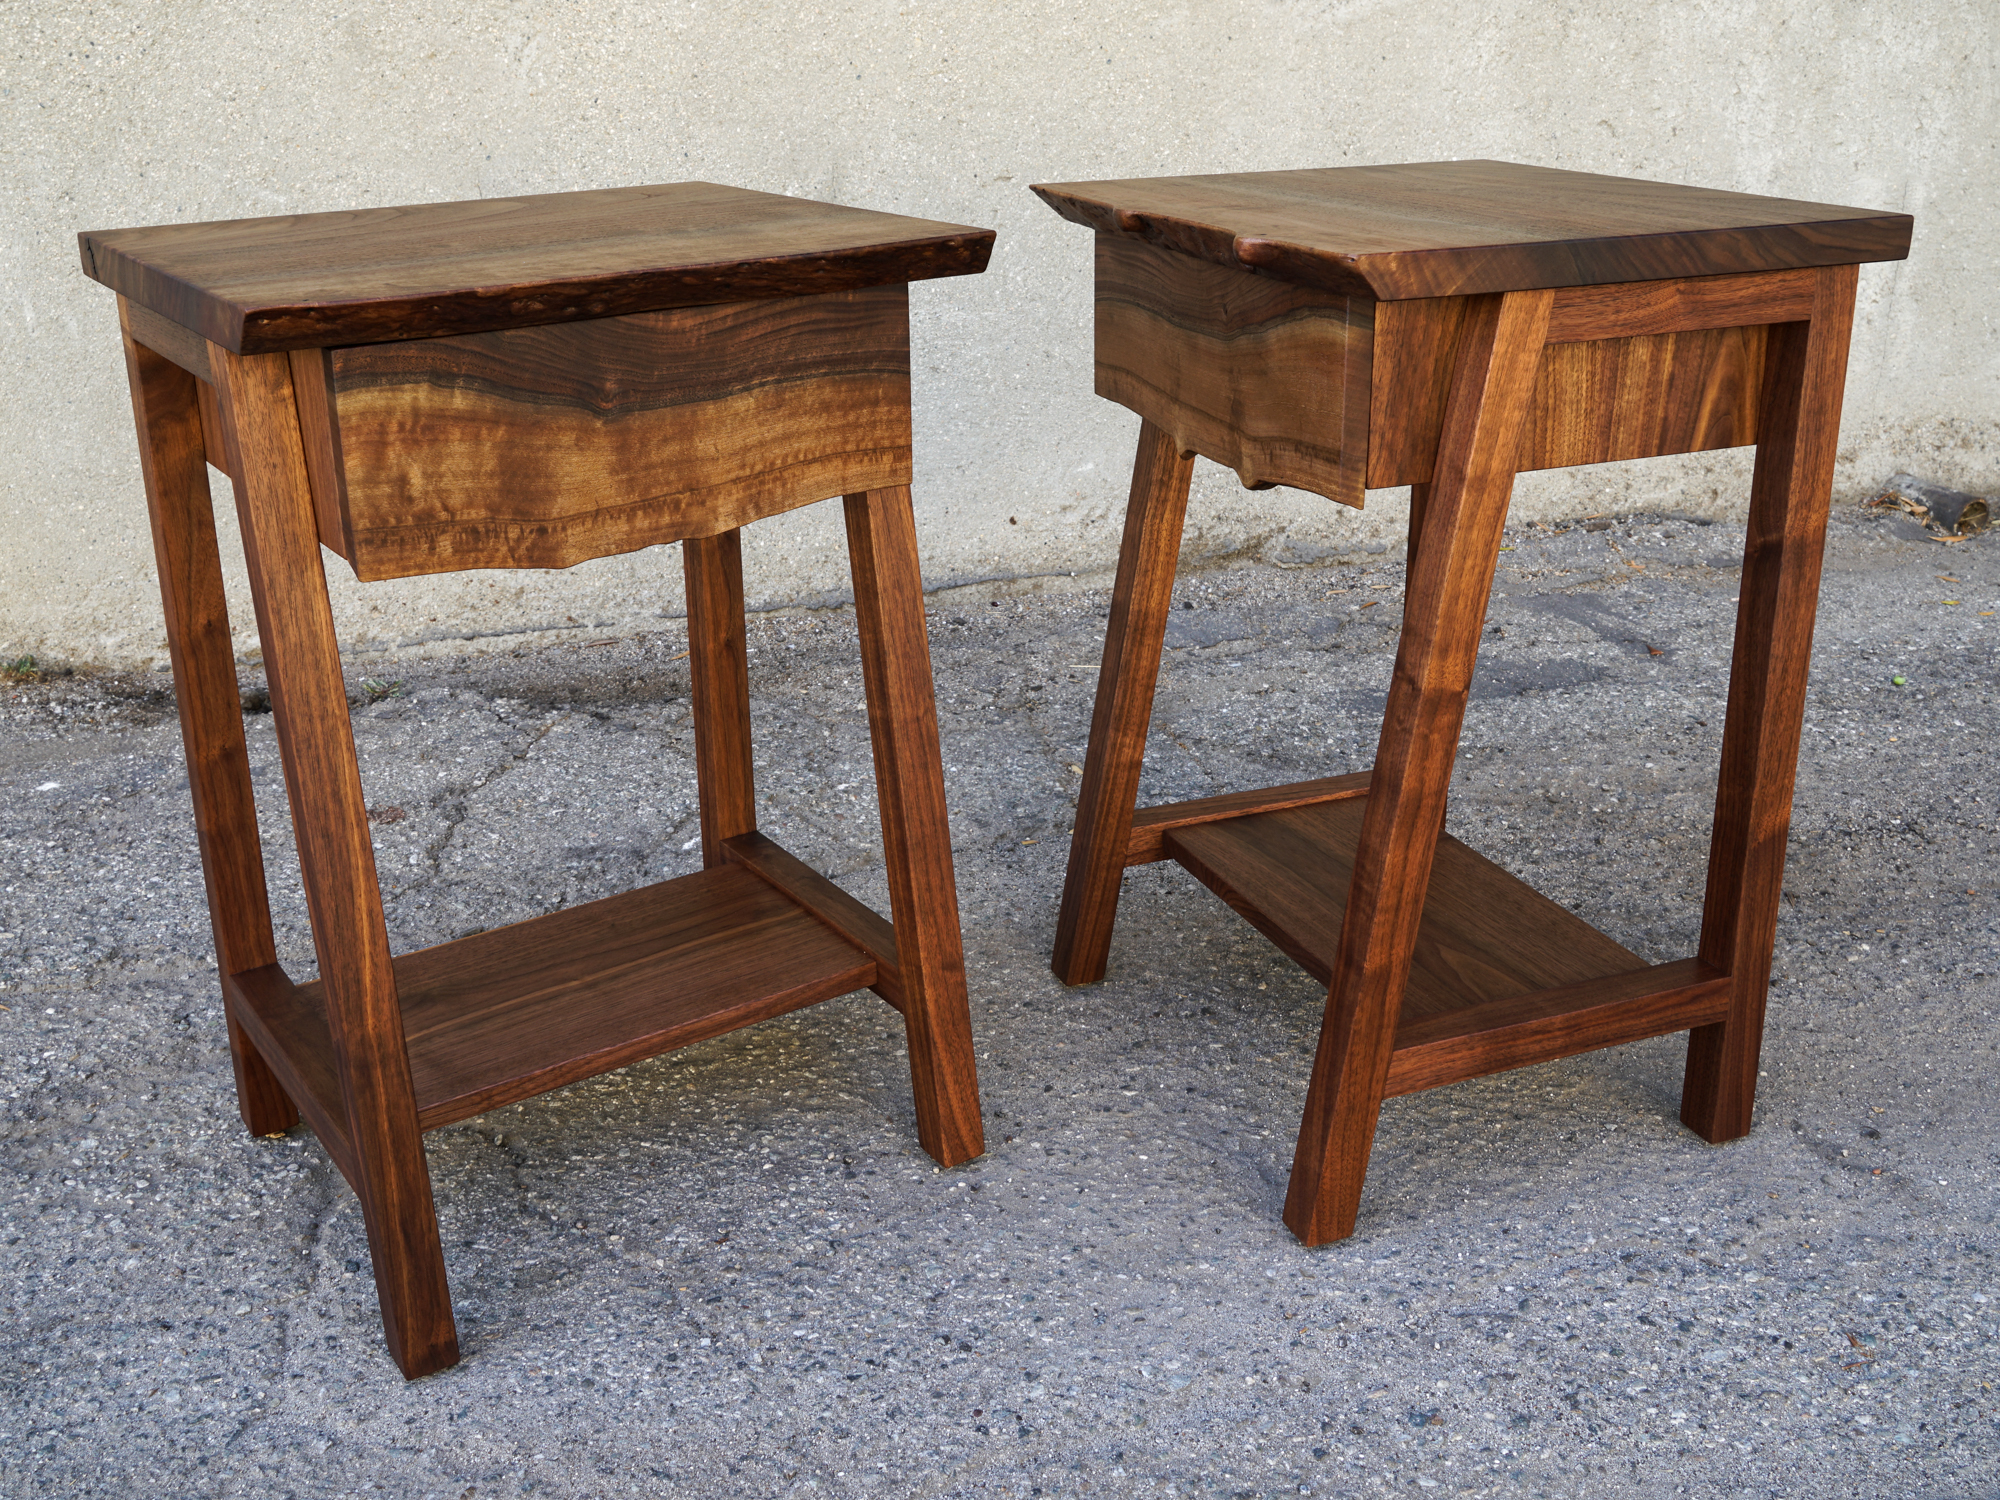 bedside tables-03847.jpg